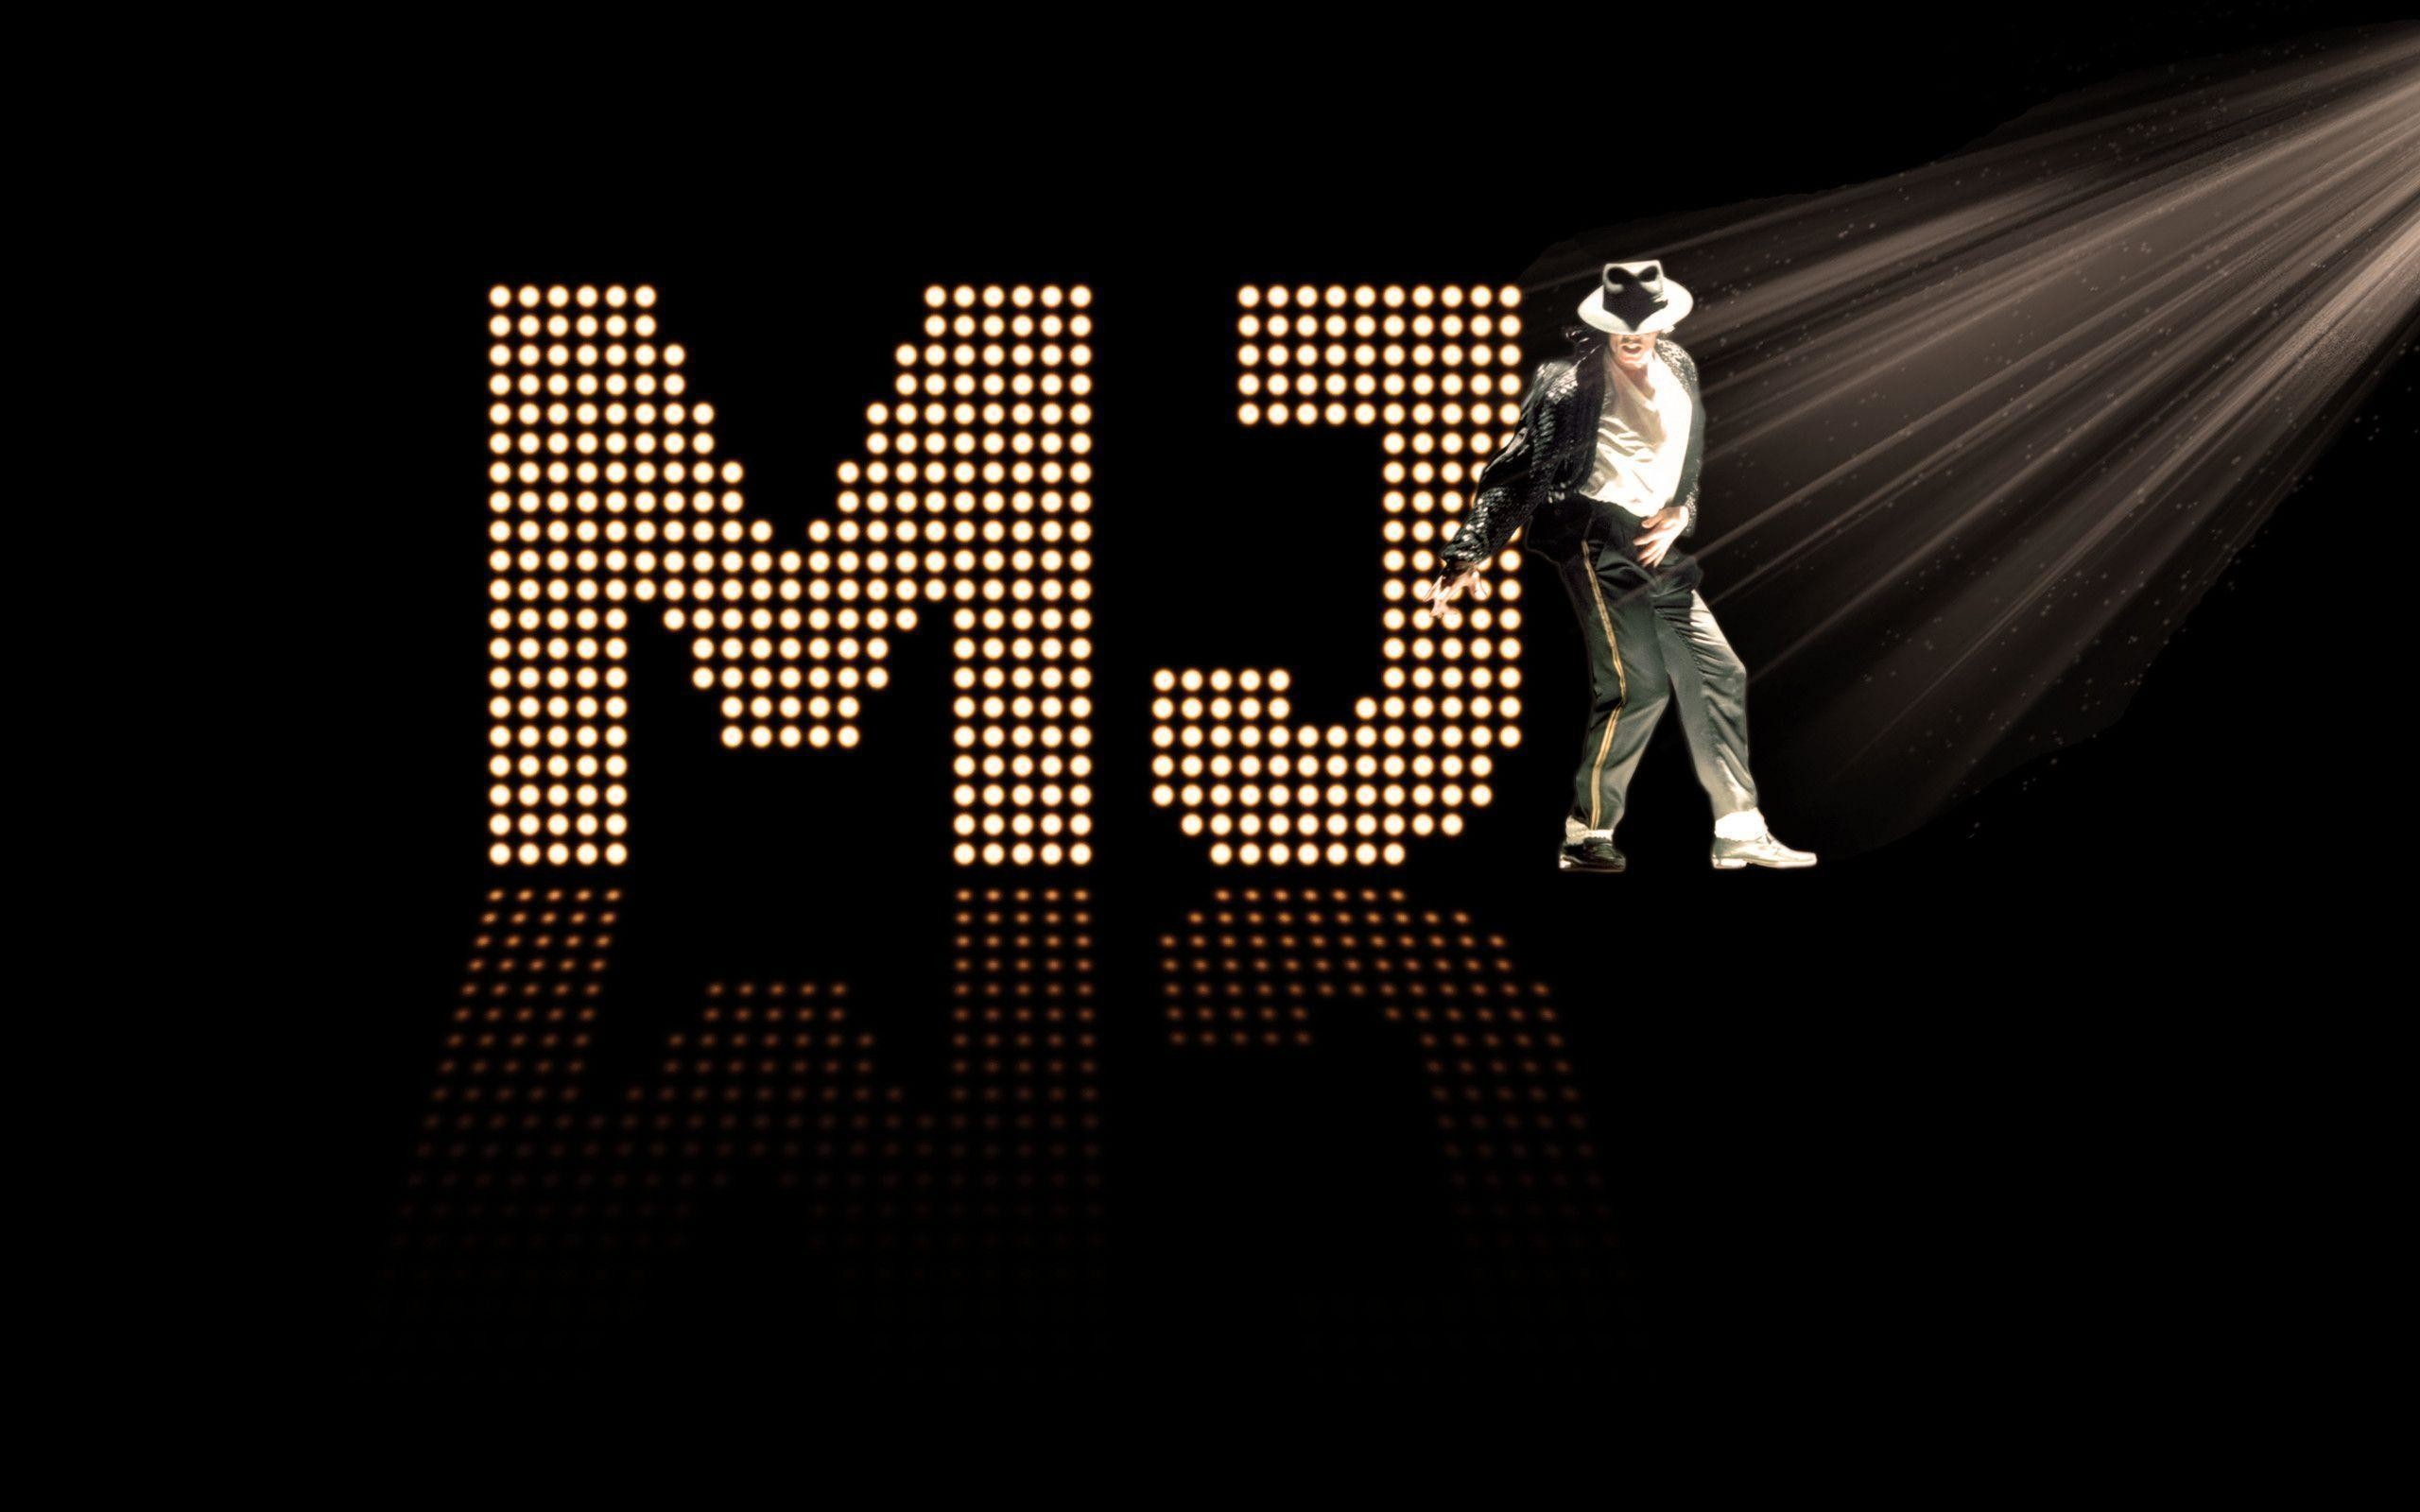 michael jackson twitter backgrounds (72+ images)